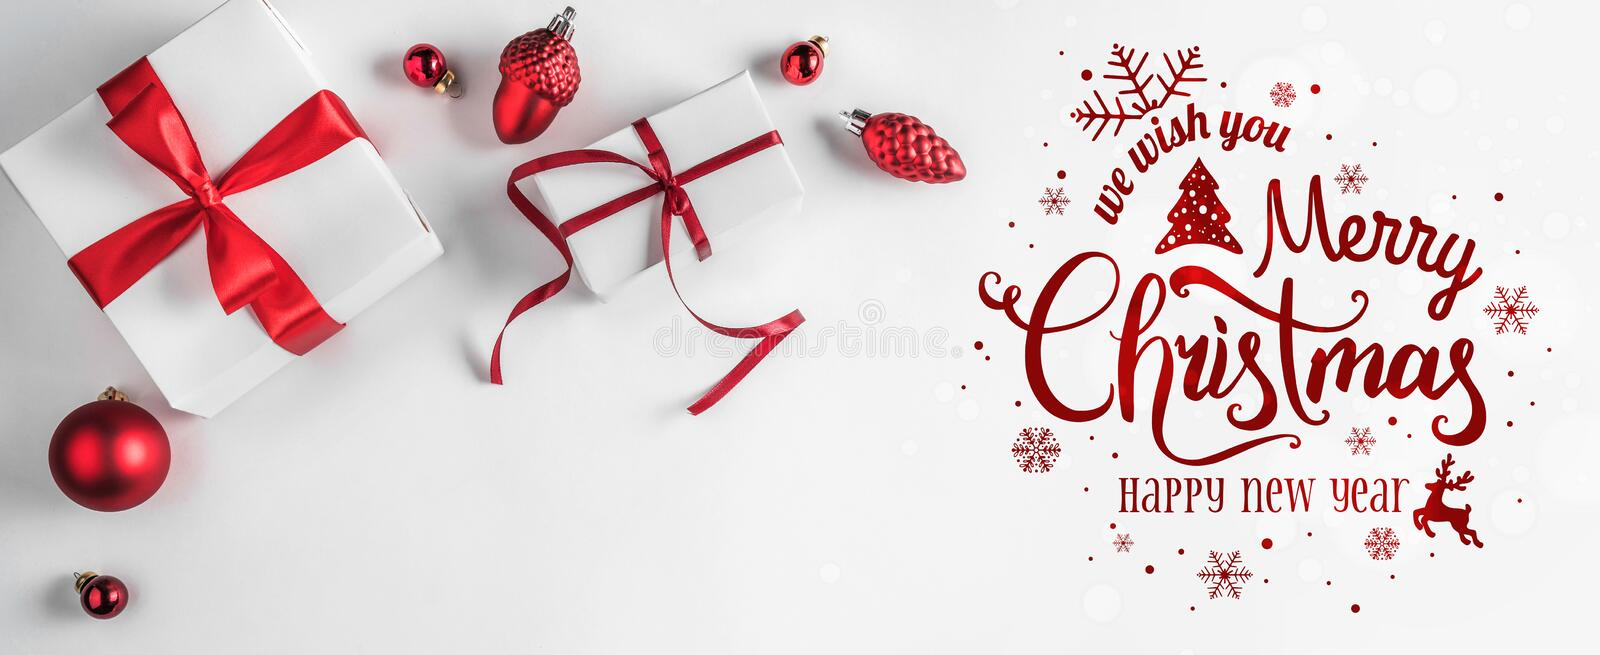 Merry Christmas Typographical on white background with gift boxes and red decoration. royalty free stock photo